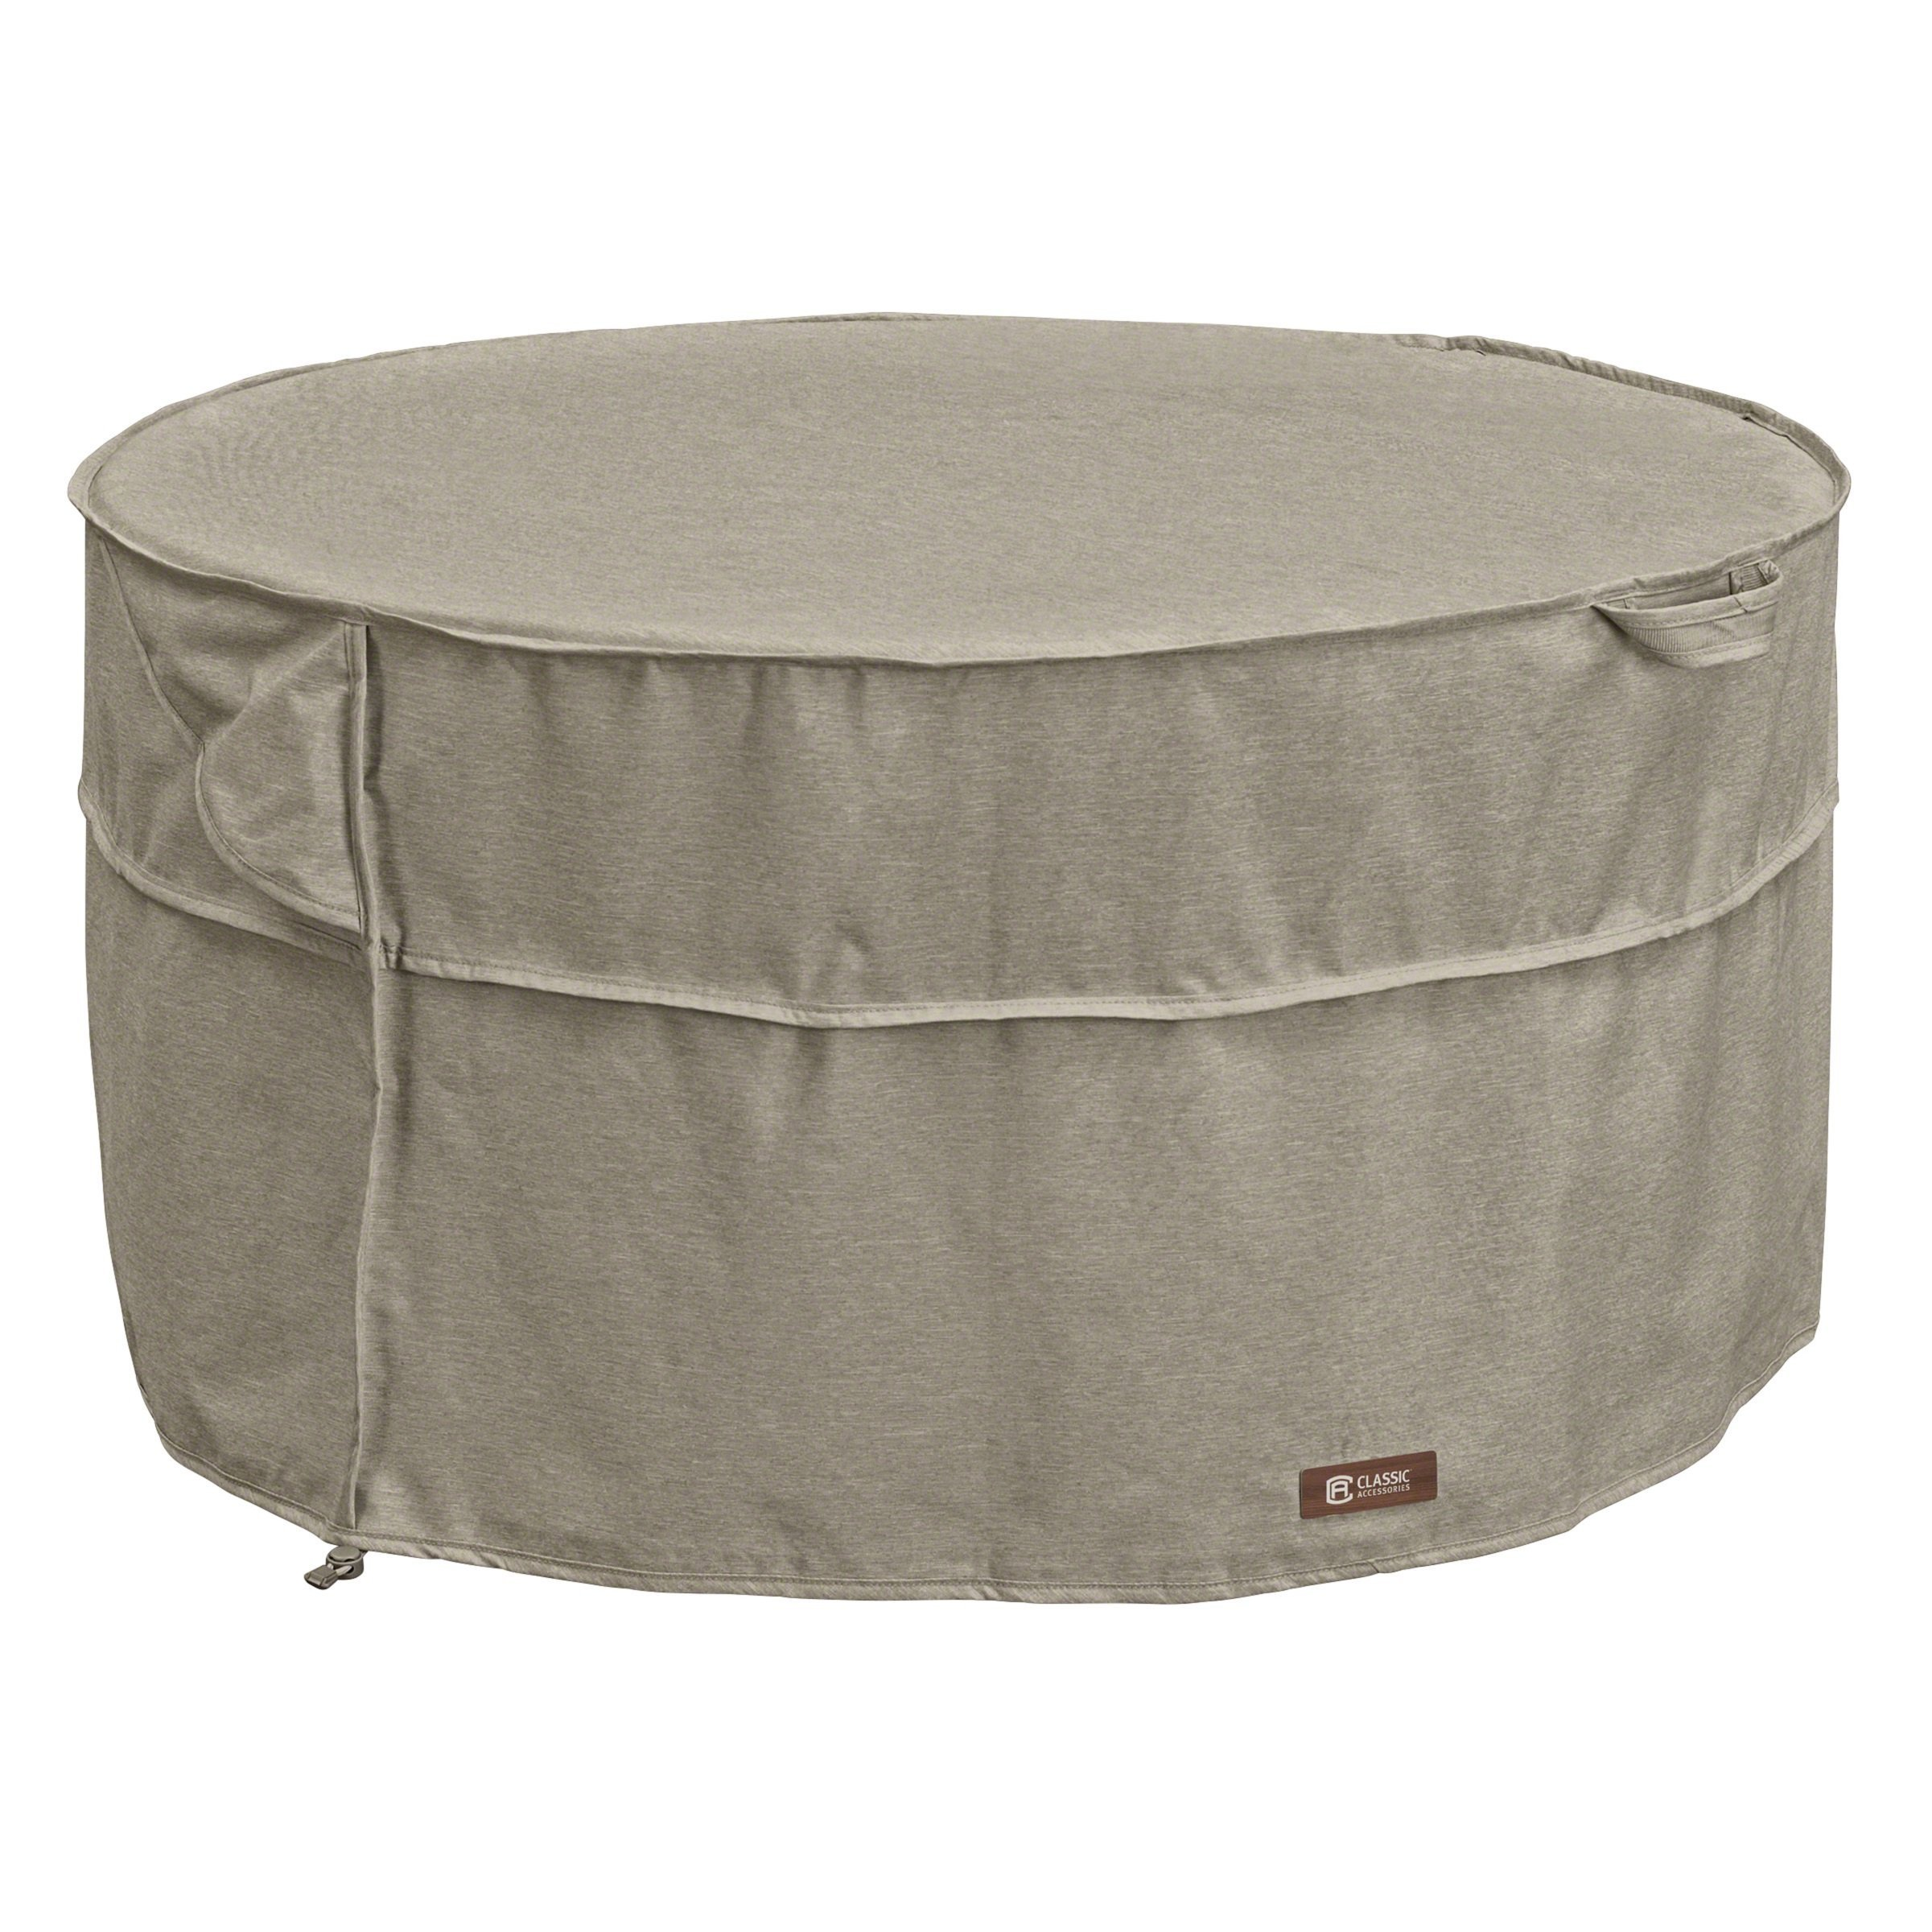 Classic Accessories 55-669-016701-RT Montlake FadeSafe Full Coverage Round Fire Pit/Table Cover, 42-inch